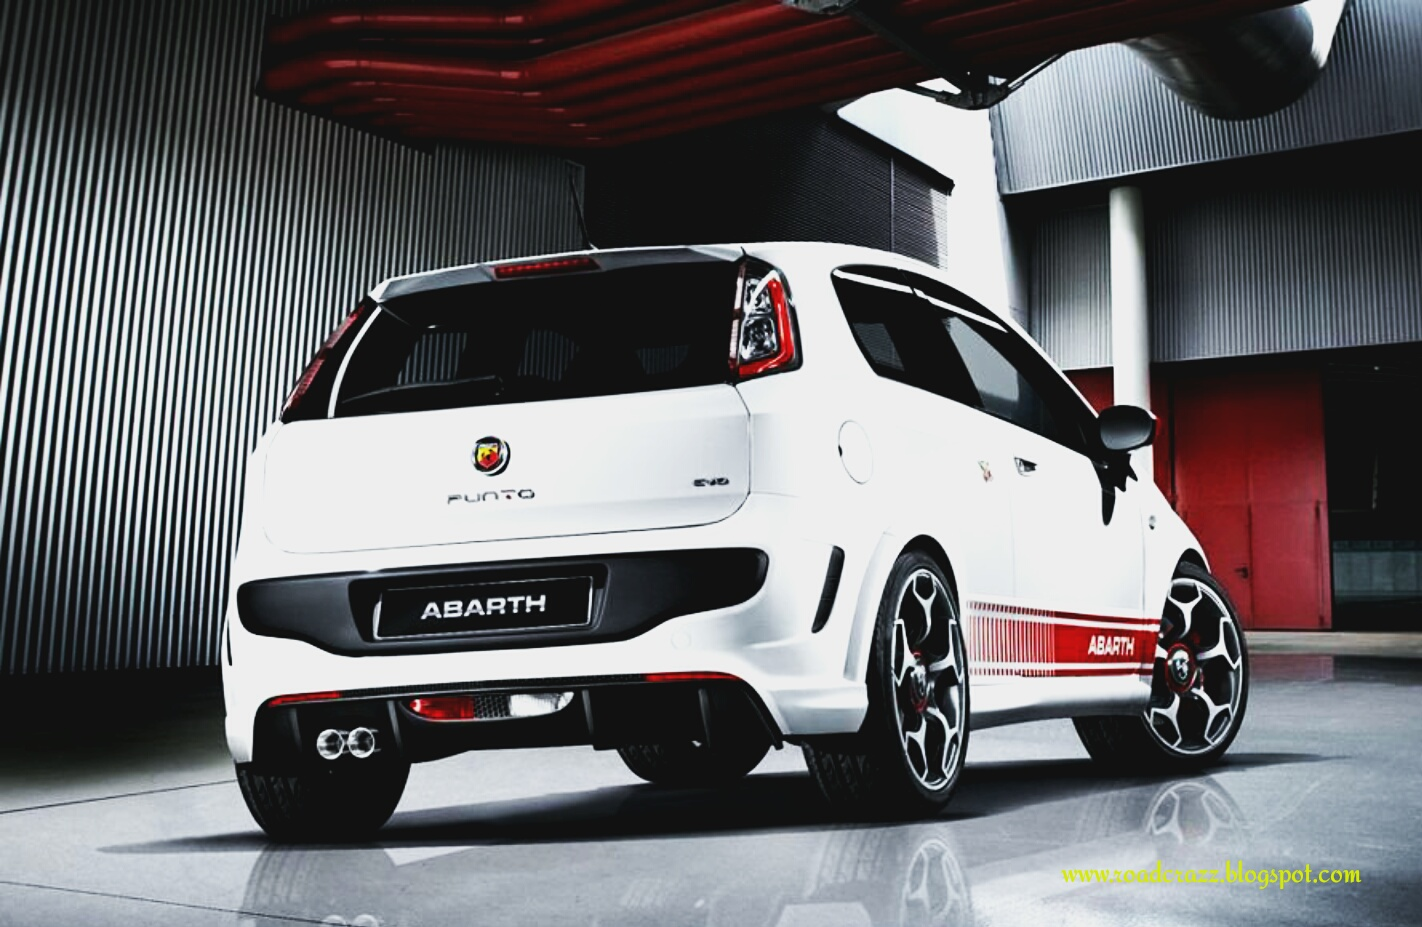 road crazz fiat punto abarth evo full specifications overview price range etc. Black Bedroom Furniture Sets. Home Design Ideas